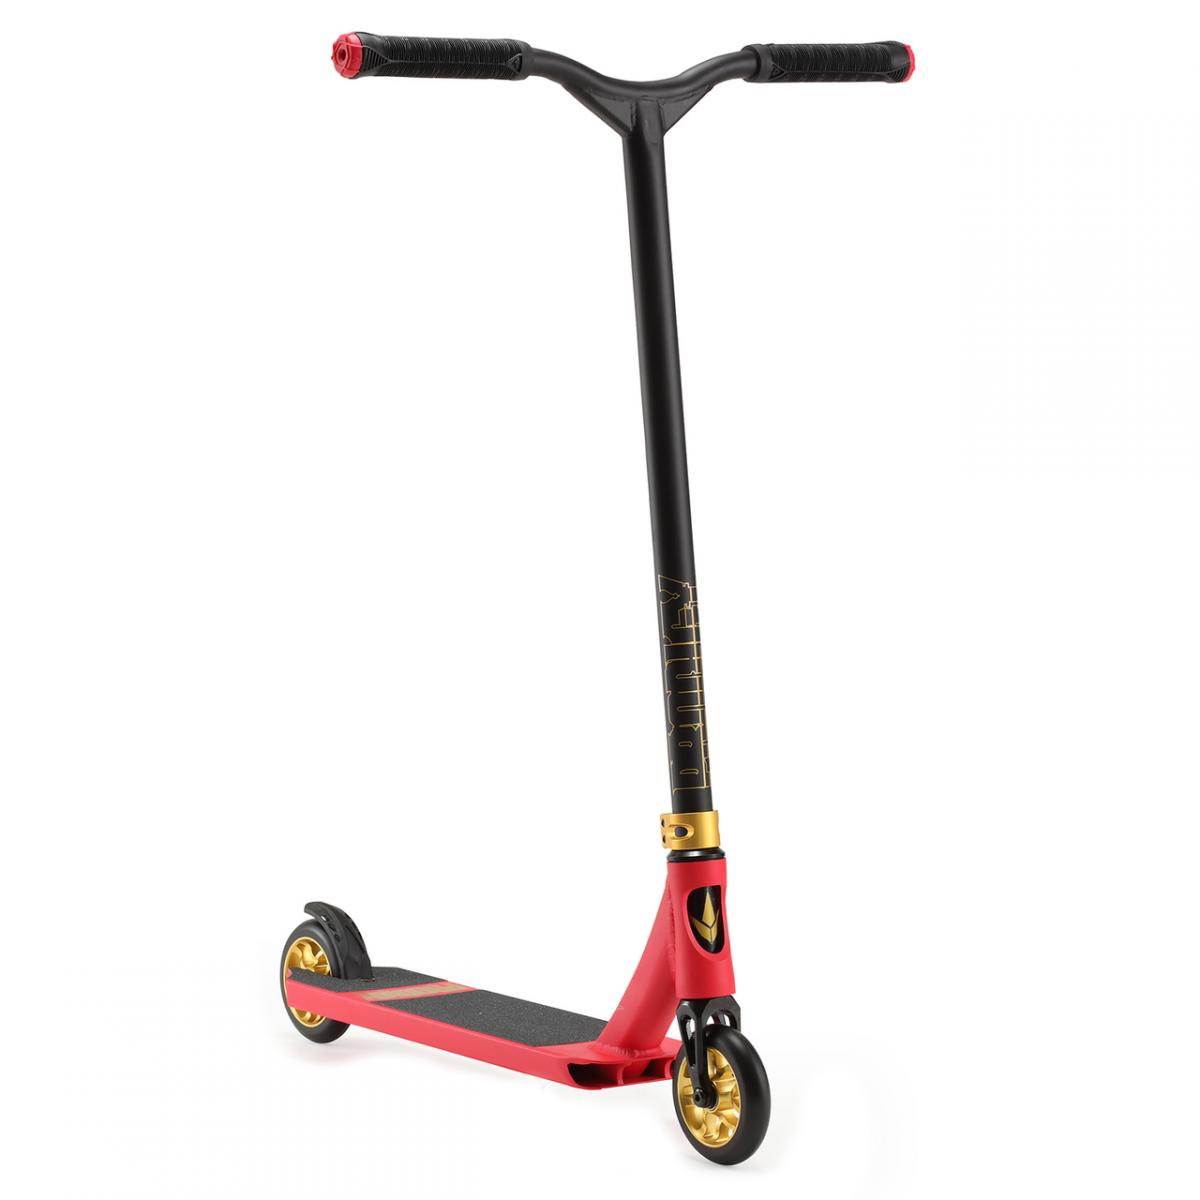 Top 10 Best Envy Pro Scooters Review (2018 Guide)